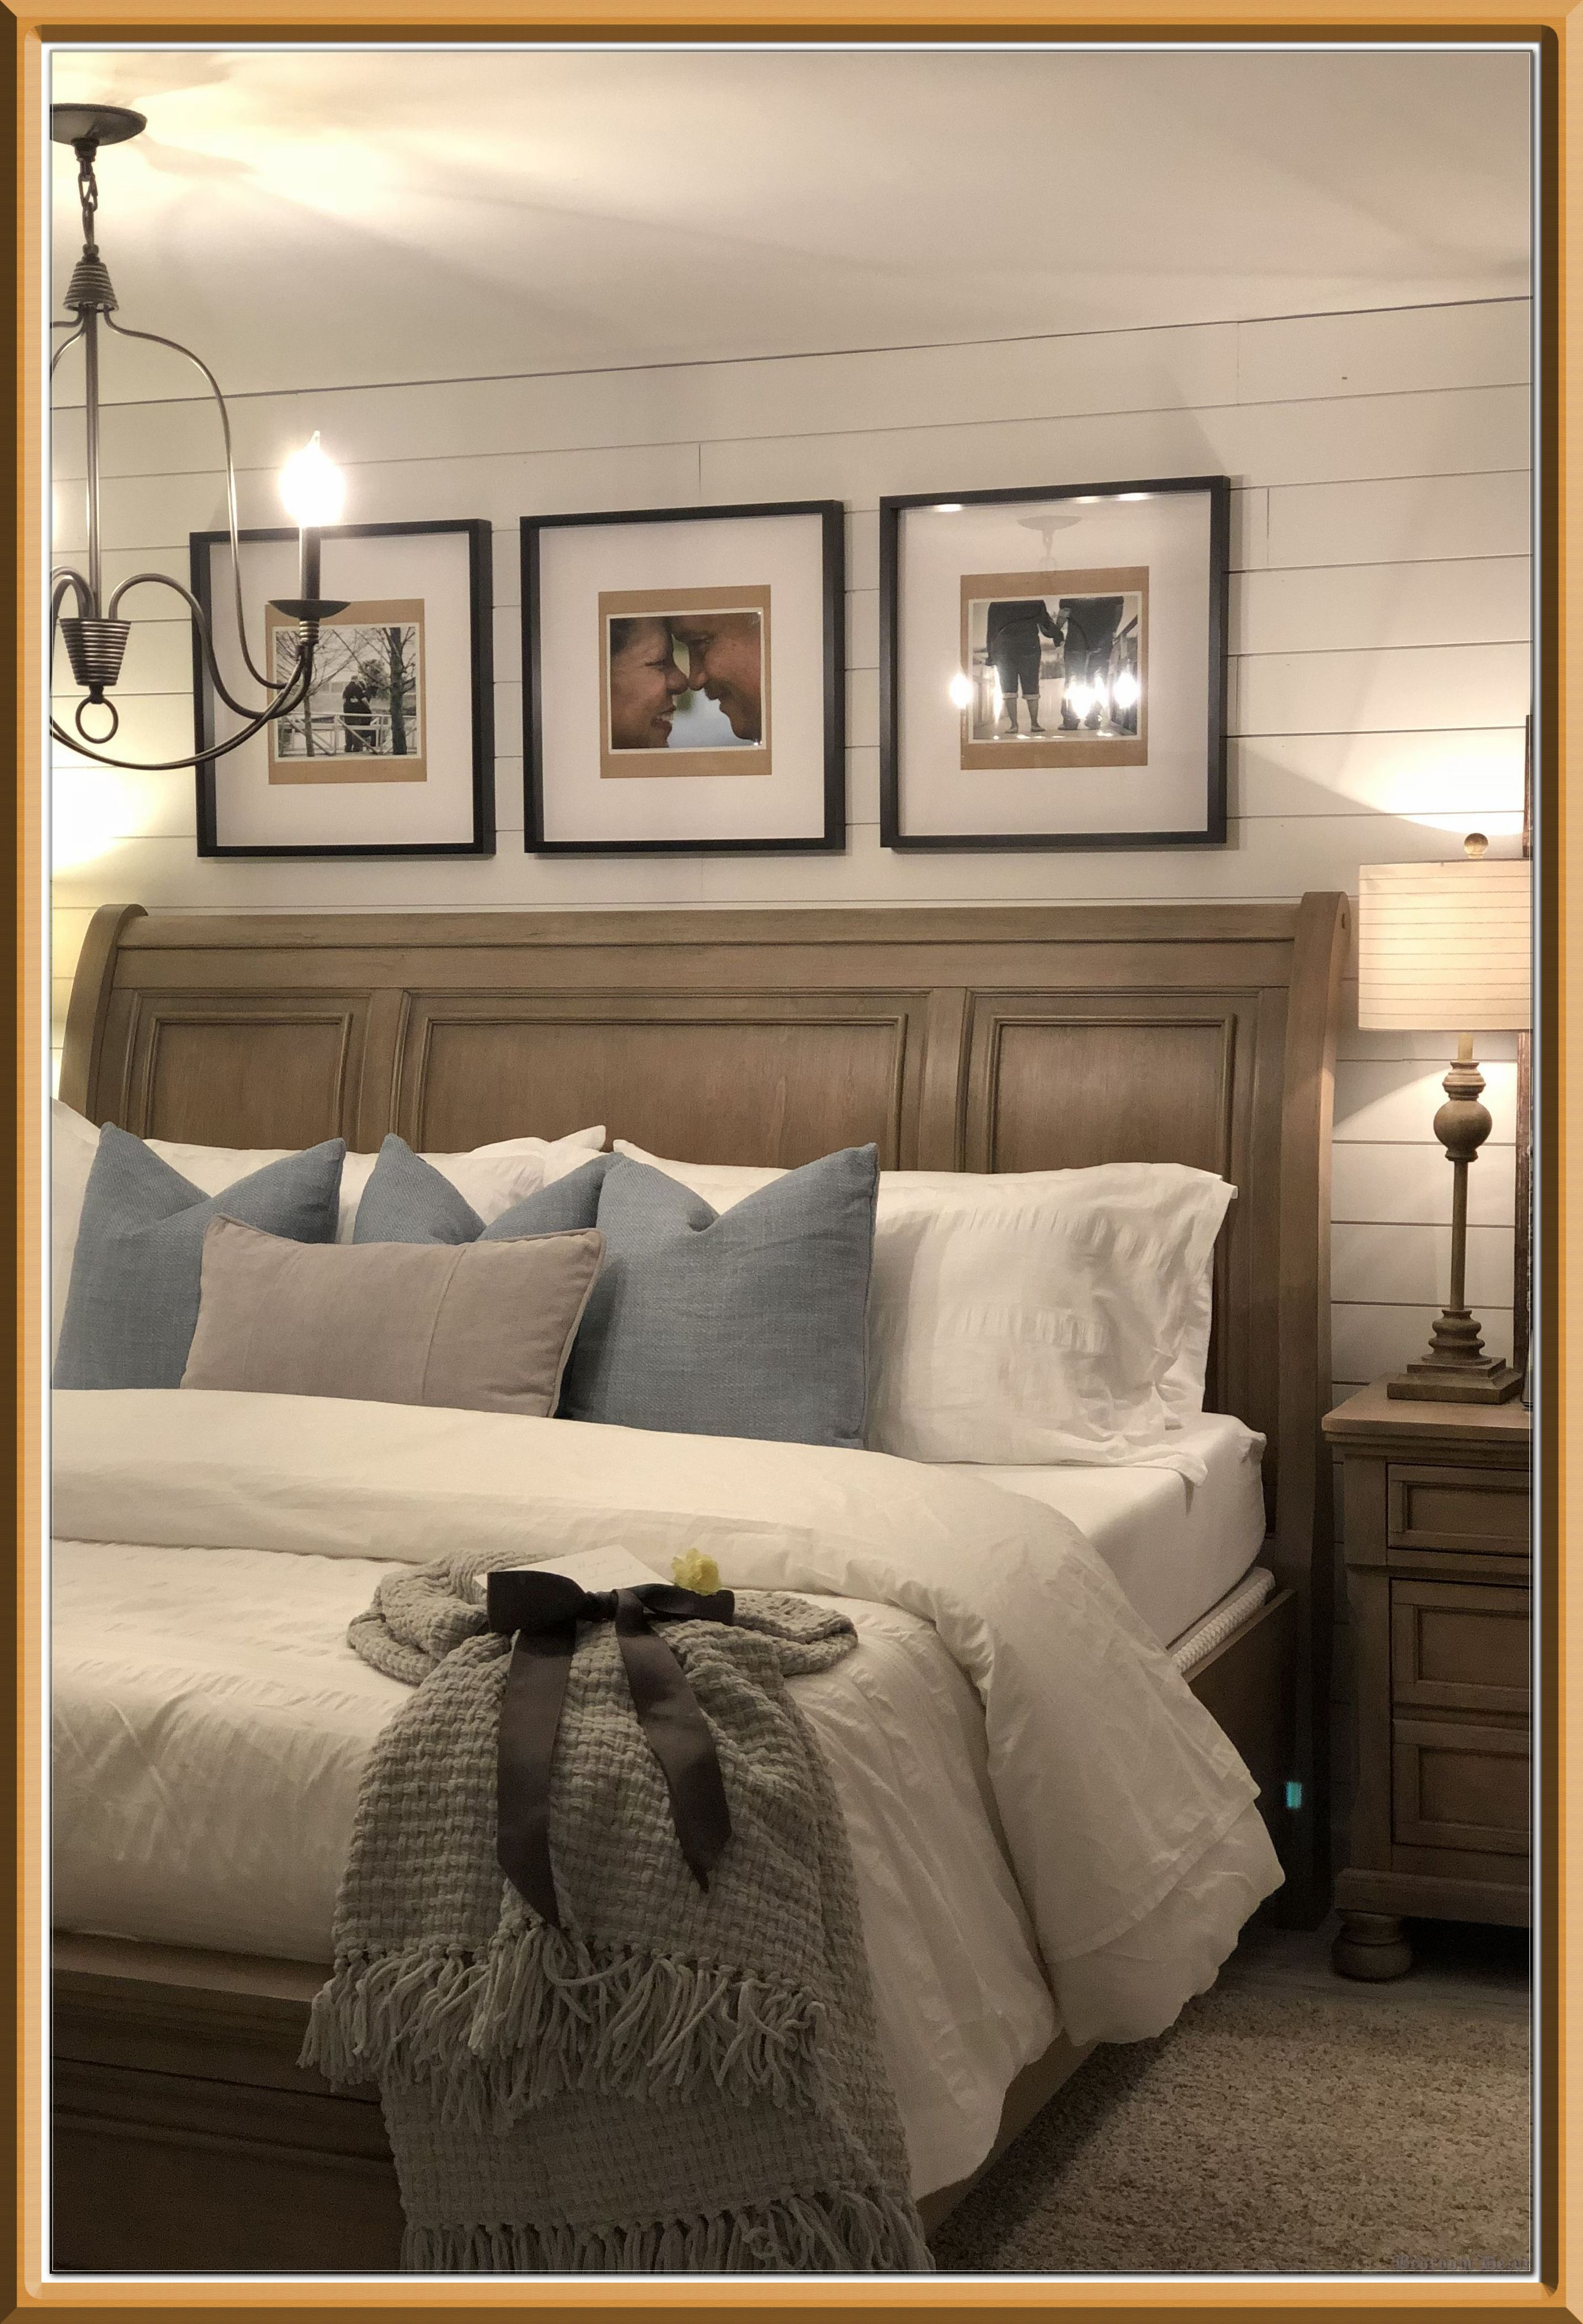 Want An Easy Fix For Your Bedroom Decor? Read This!